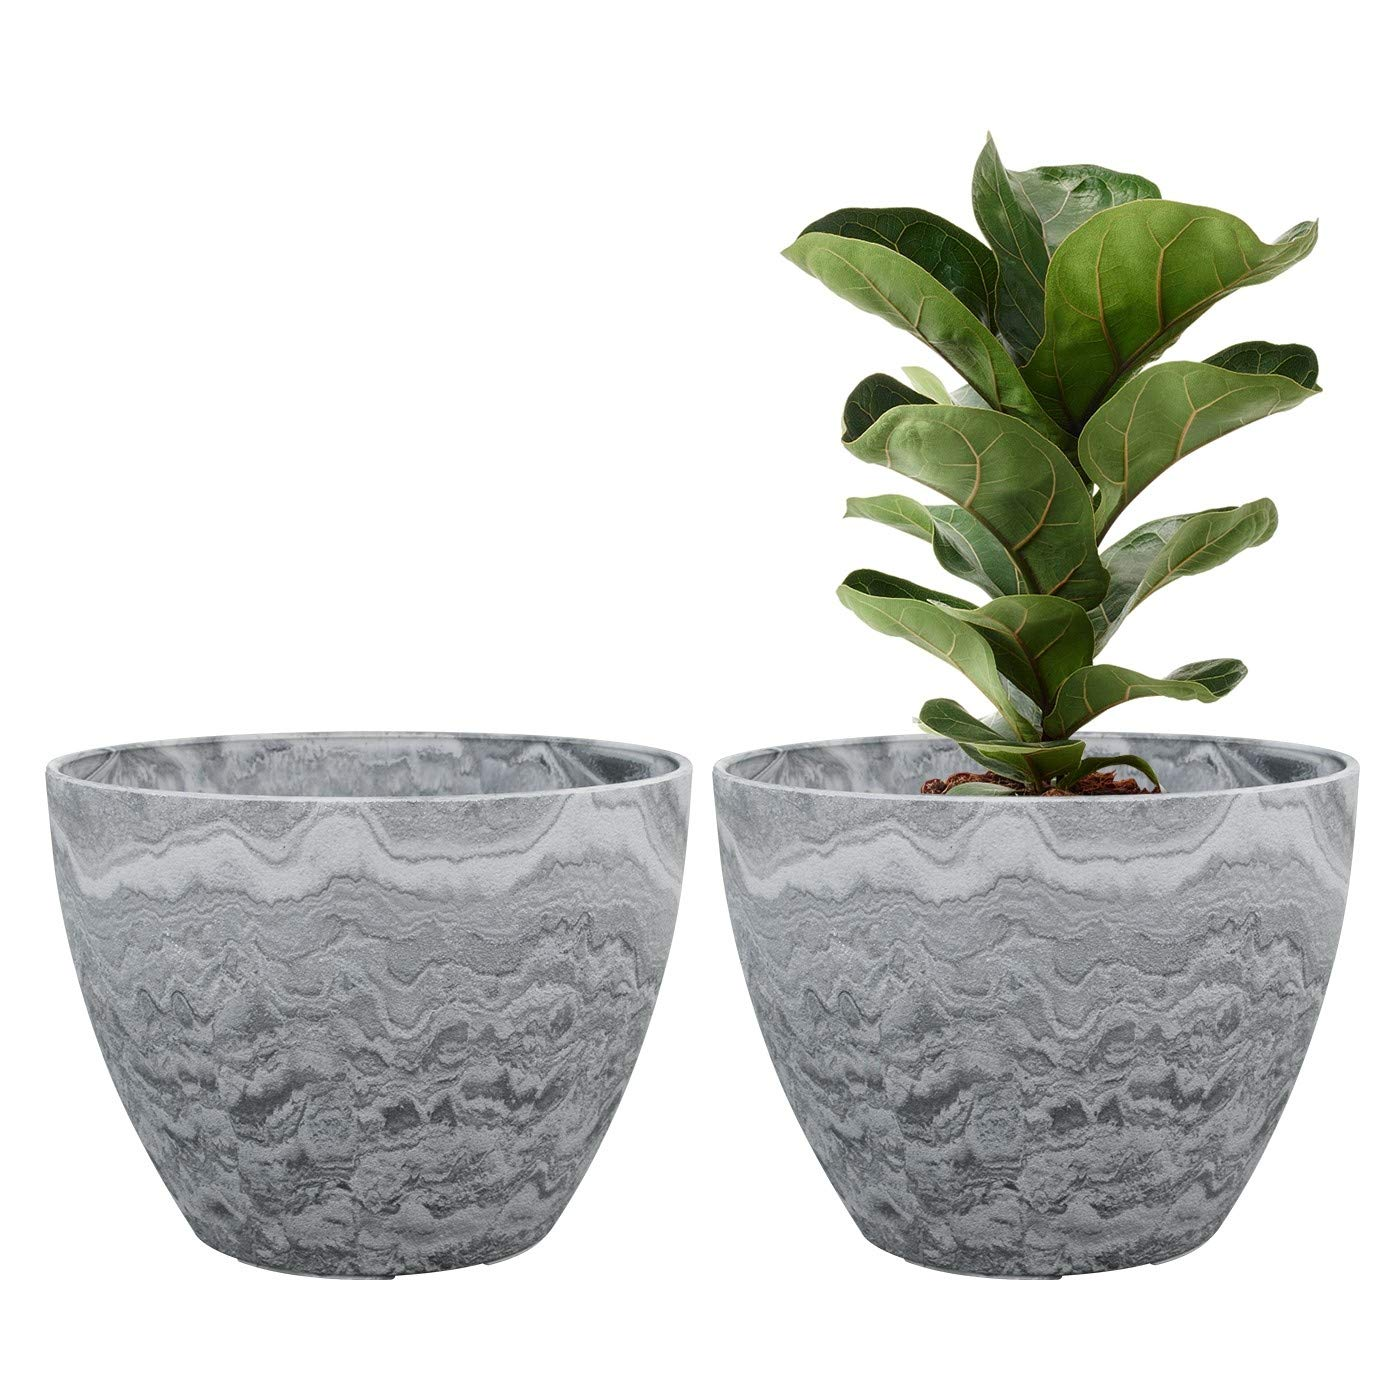 LA JOLIE MUSE Flower Pot Large Garden Planters 11.3 Inches Pack 2 Outdoor Indoor, Outdoor Planters with Drain Hole (Marble)